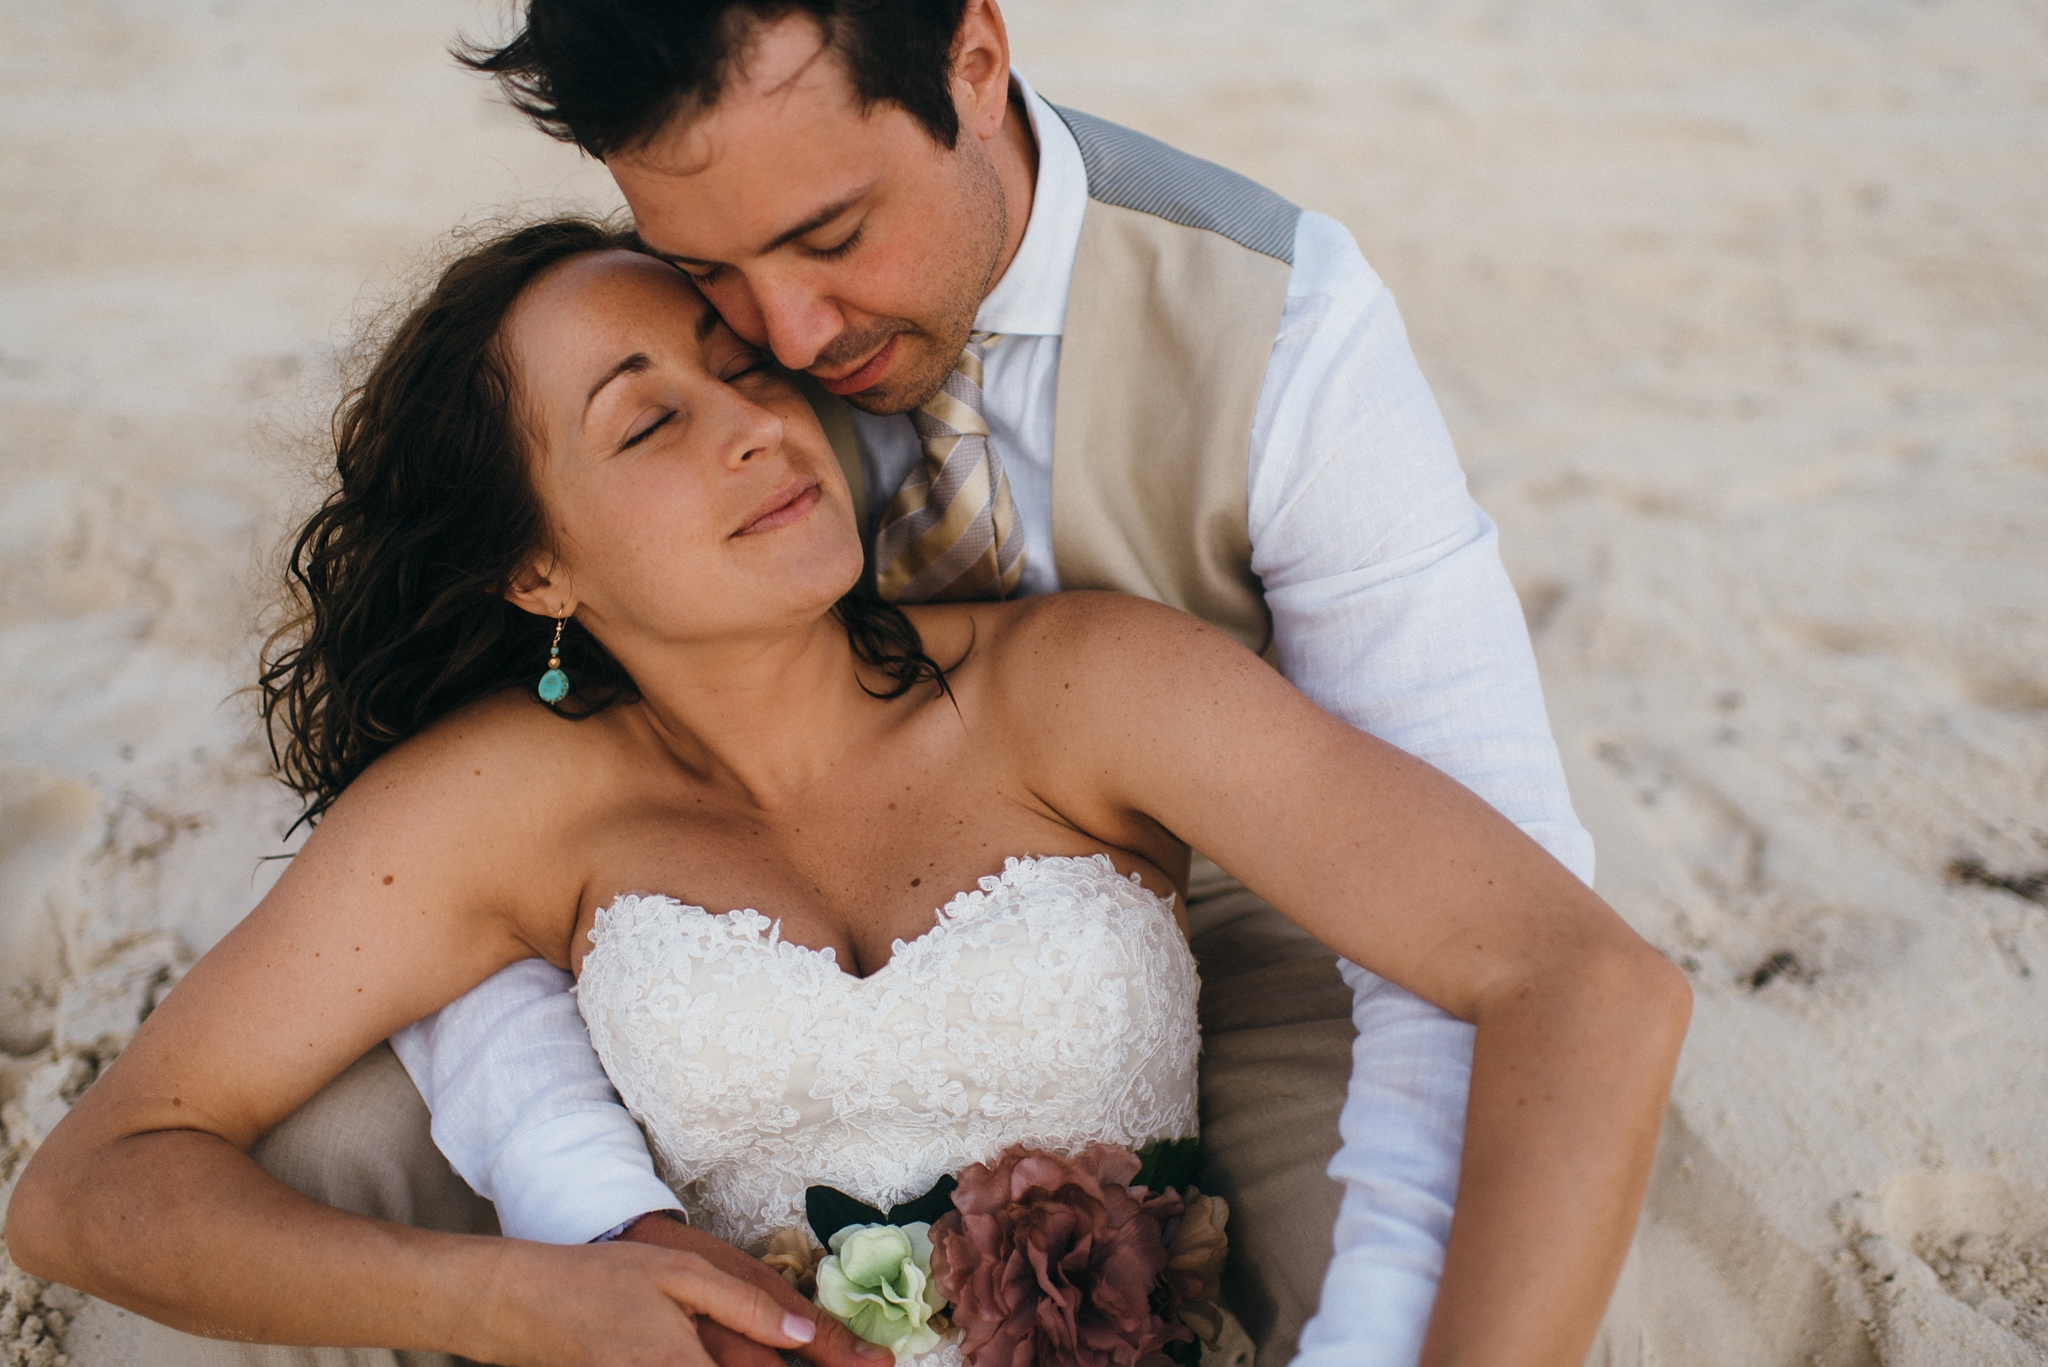 kaihla_tonai_intimate_wedding_elopement_photographer_1192